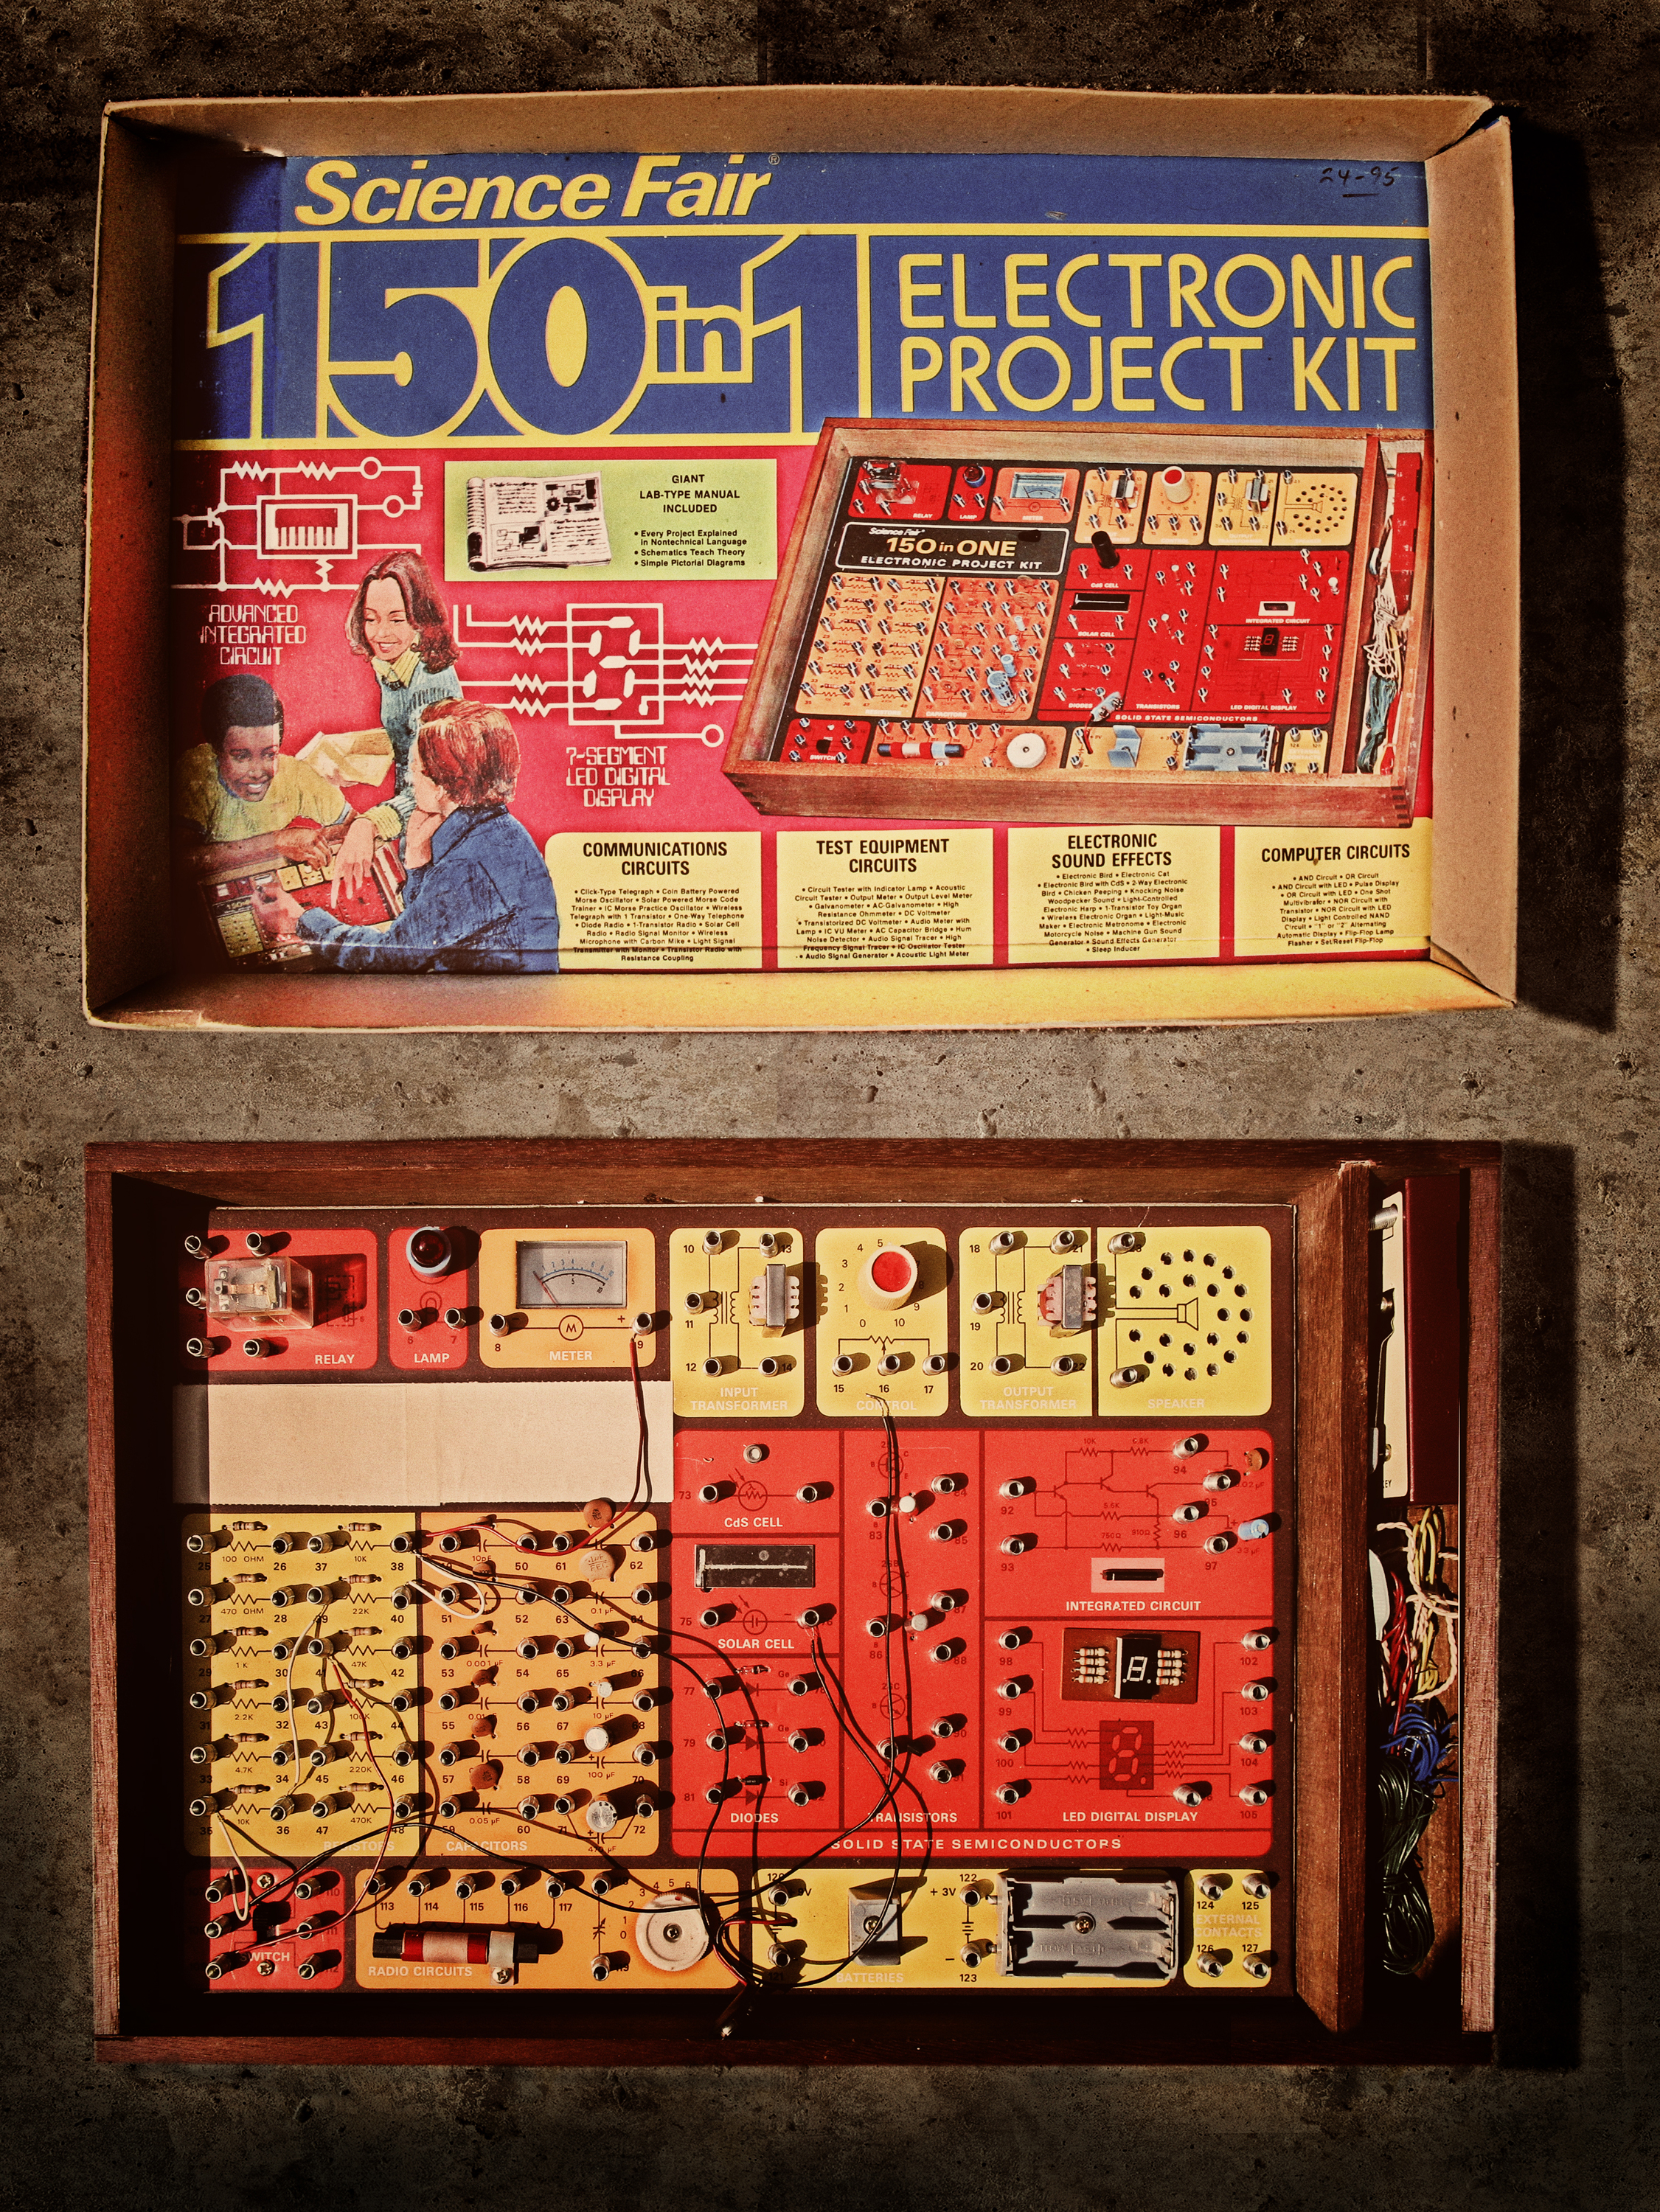 File:Science Fair 150in1 Electronic Project Kit.jpg - Wikimedia Commons